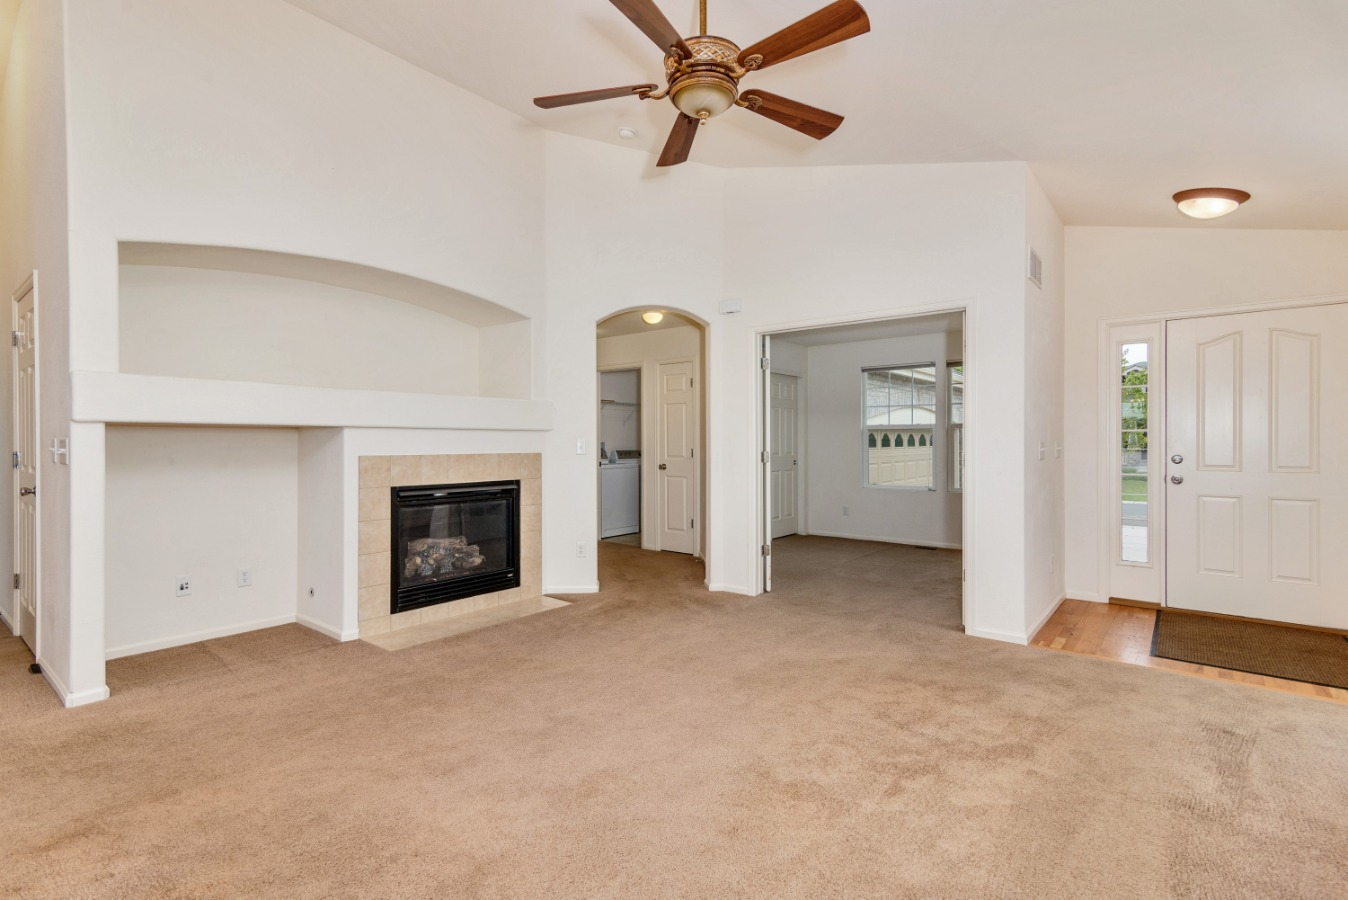 Living Room with gas fireplace/built-ins